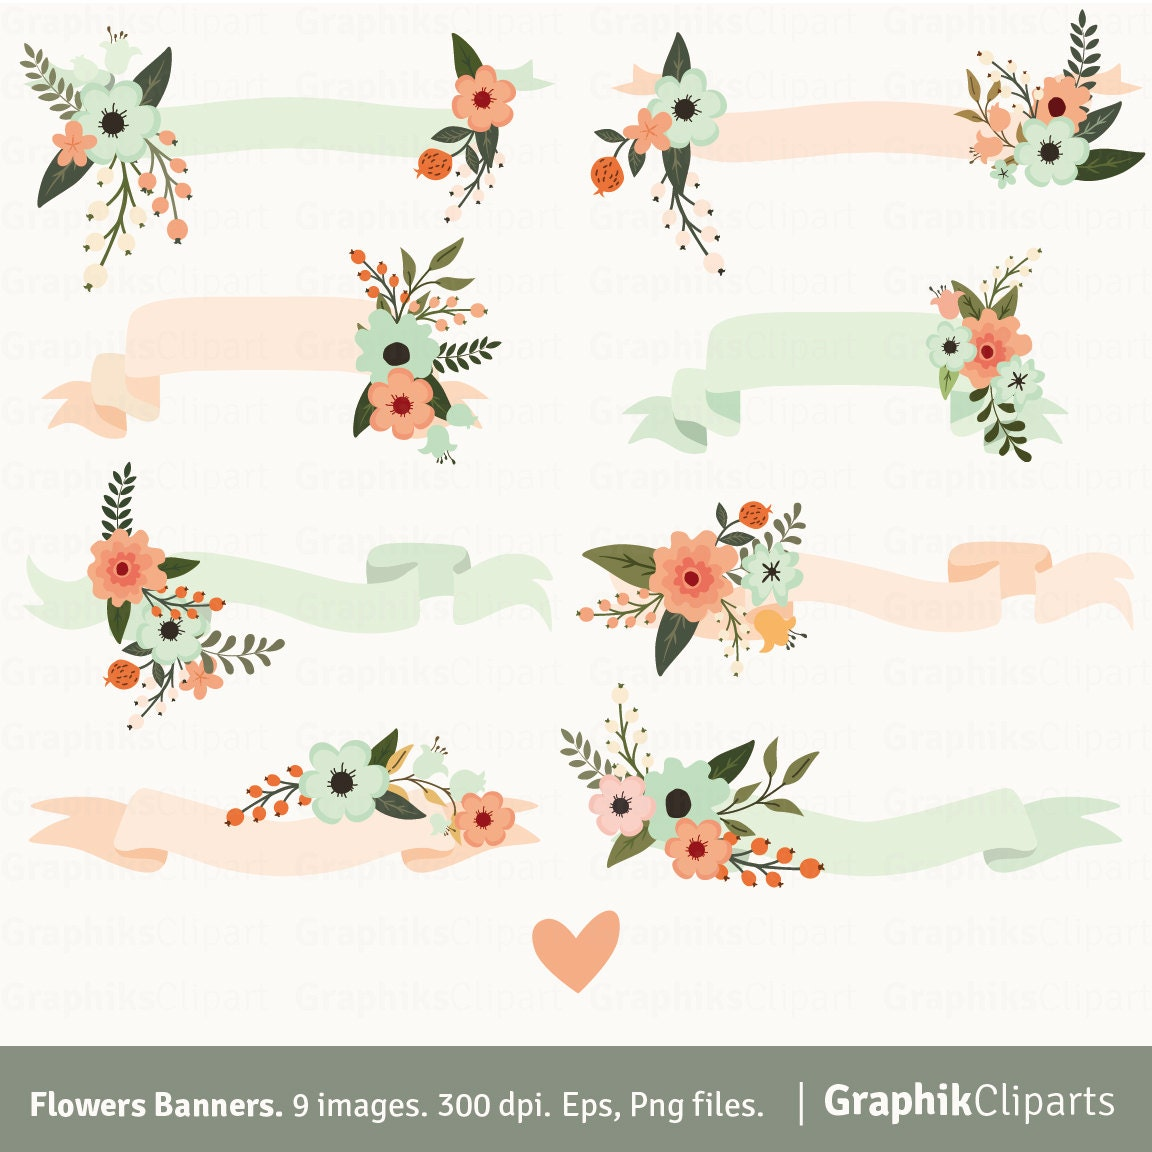 Flowers Banners Clip Art. BANNERS CLIP ART. Floral Ribbons.